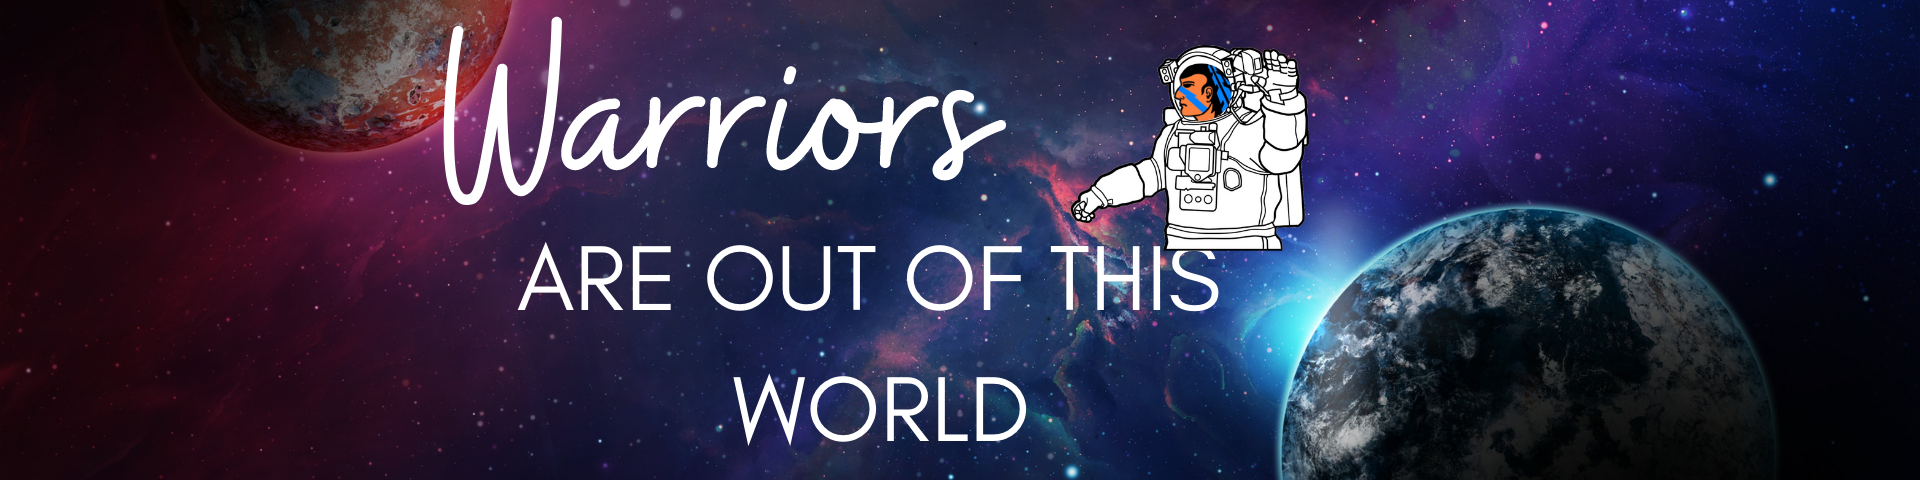 warriors are out of this world